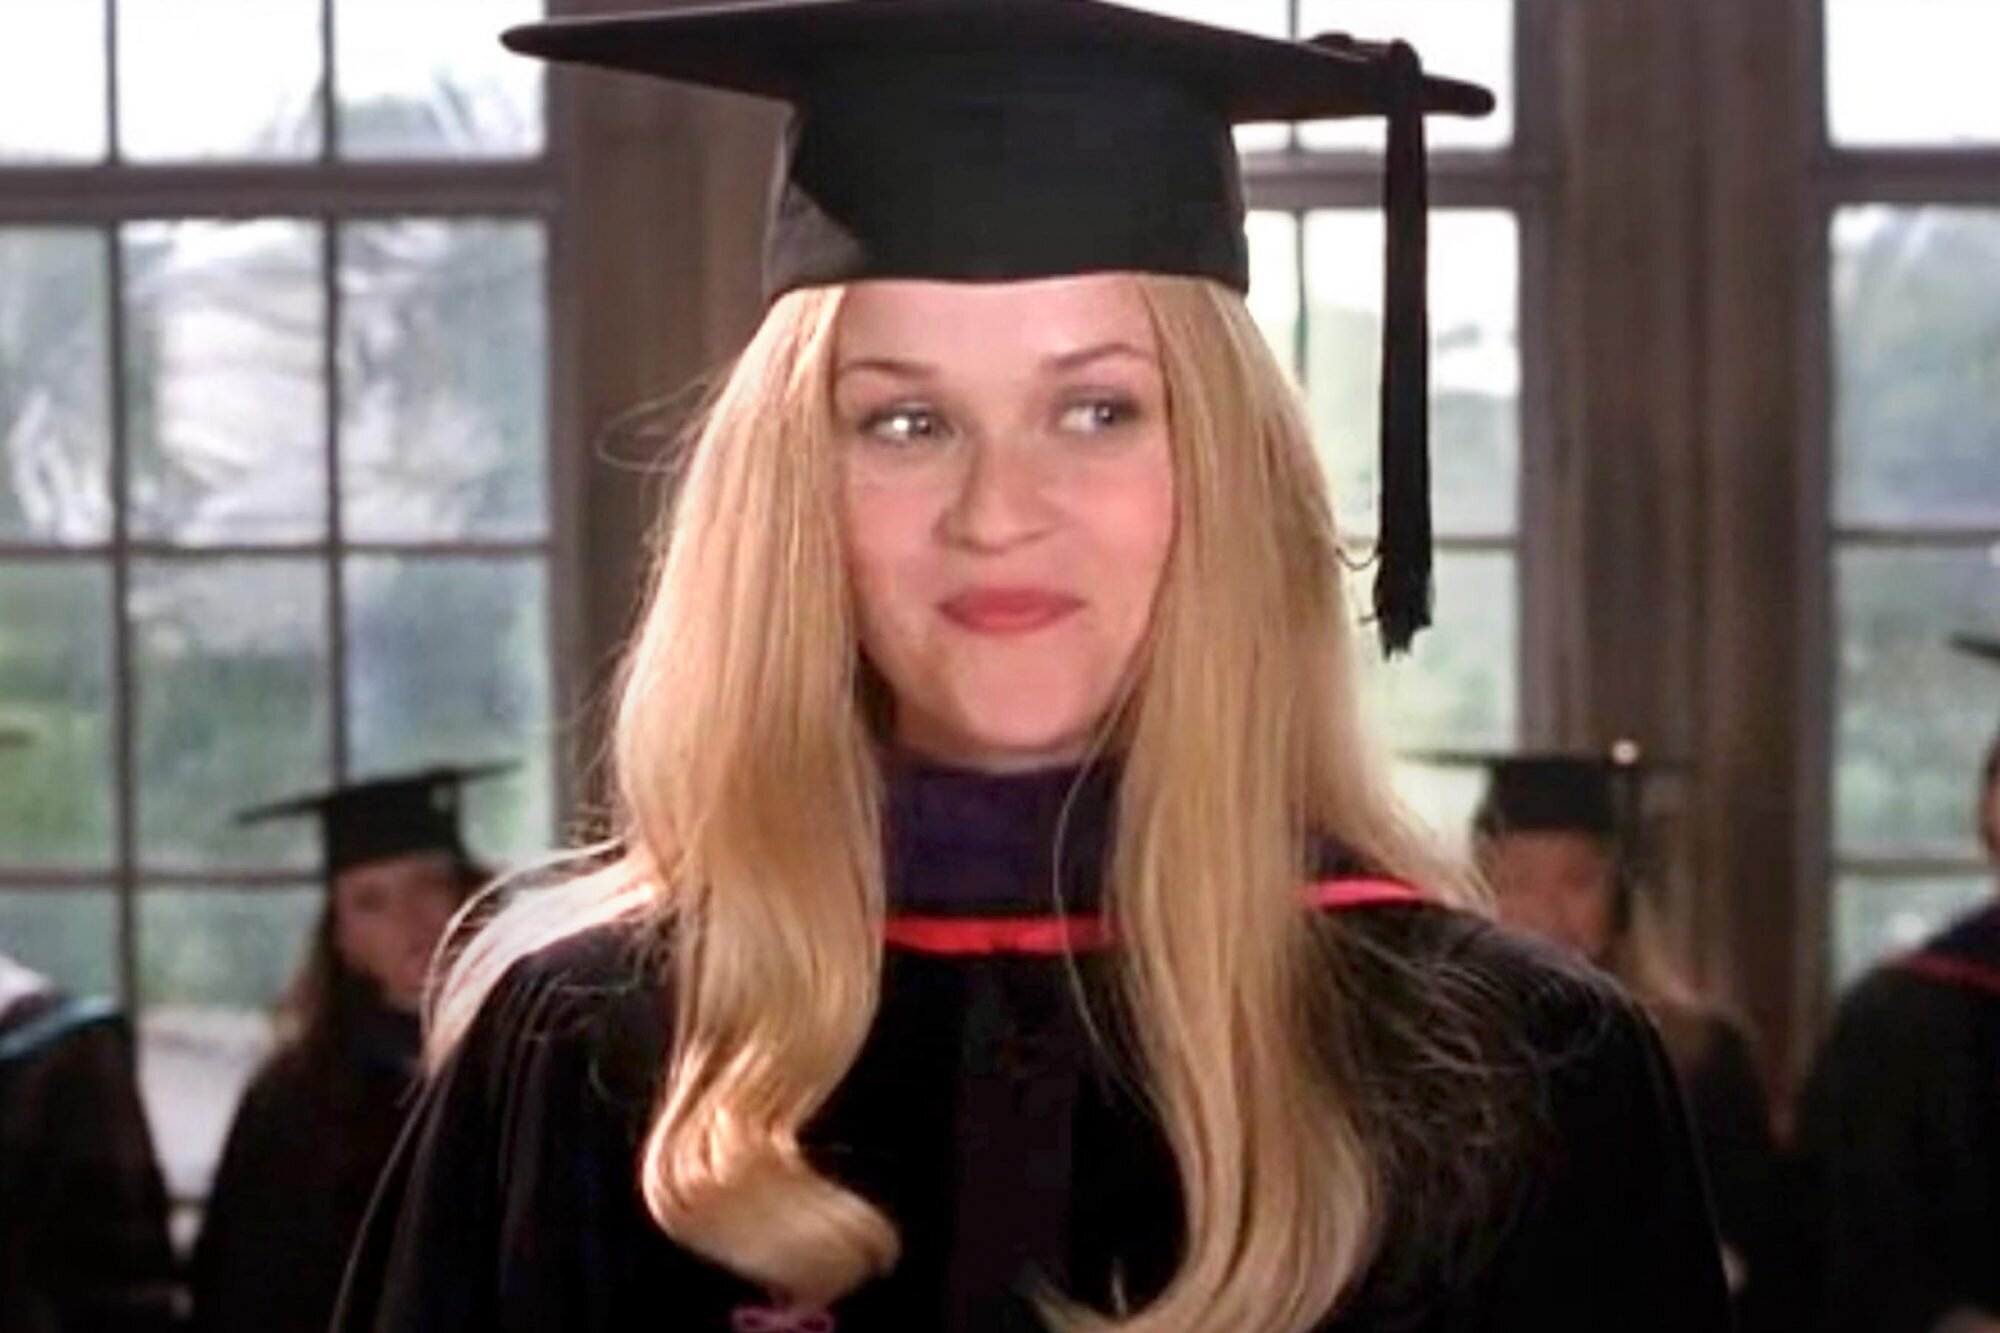 legally-blondegrad-2000.jpg&q=85